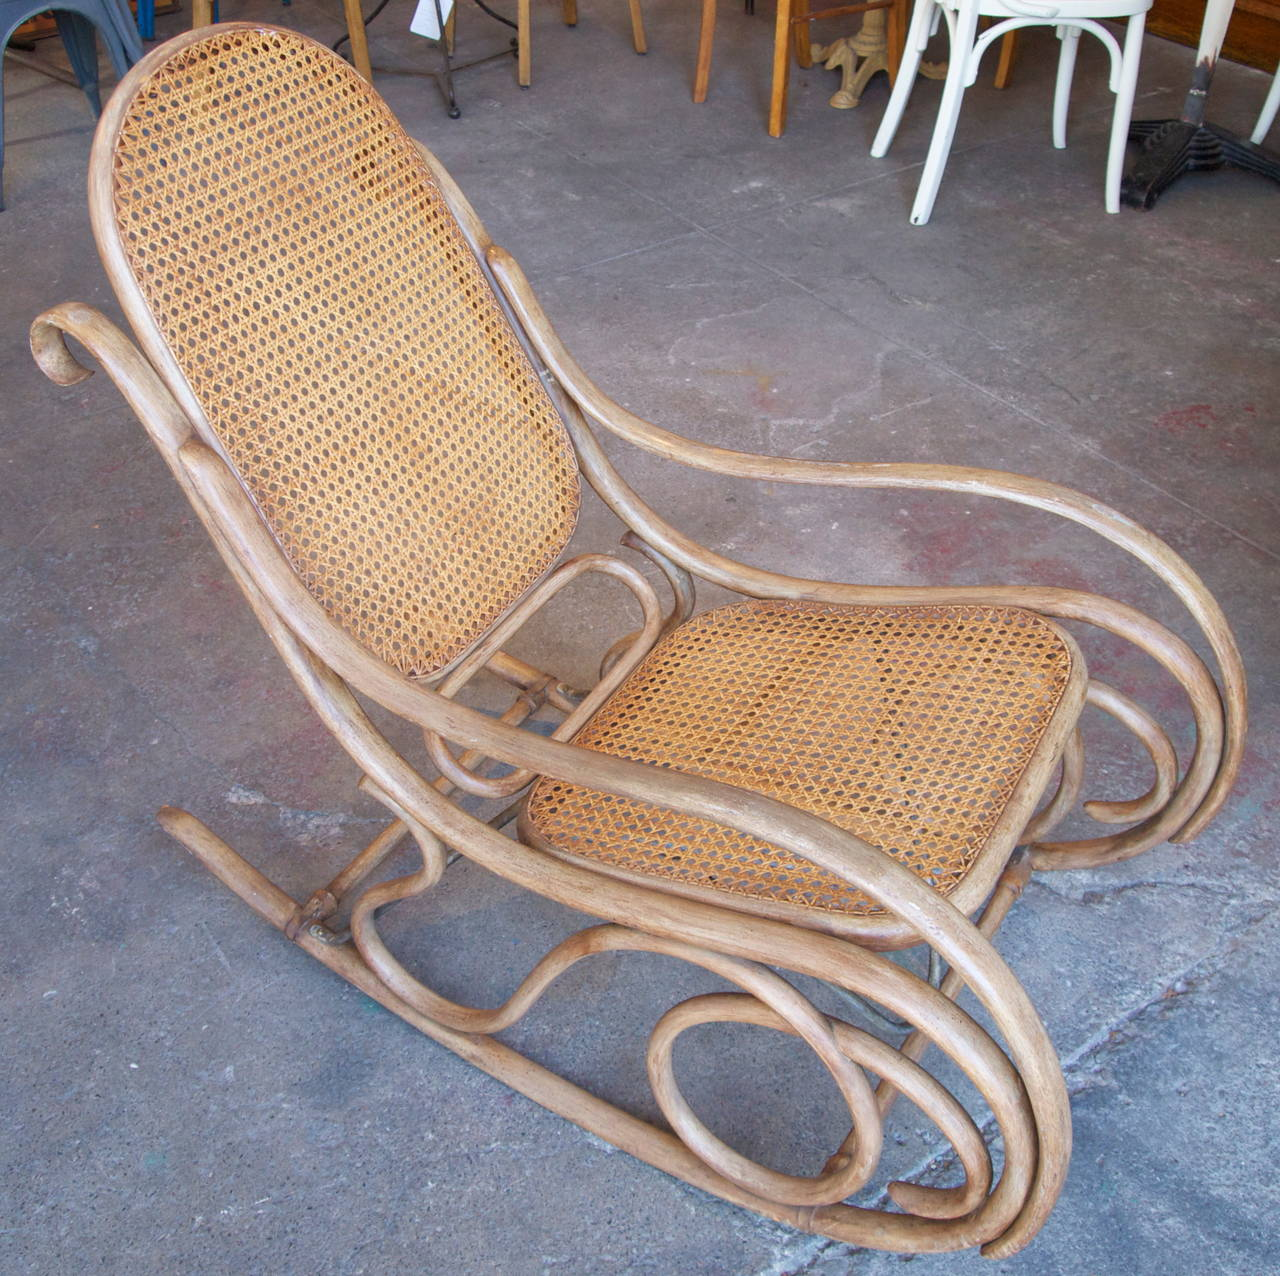 thonet bentwood and caned rocking chair for sale at 1stdibs. Black Bedroom Furniture Sets. Home Design Ideas